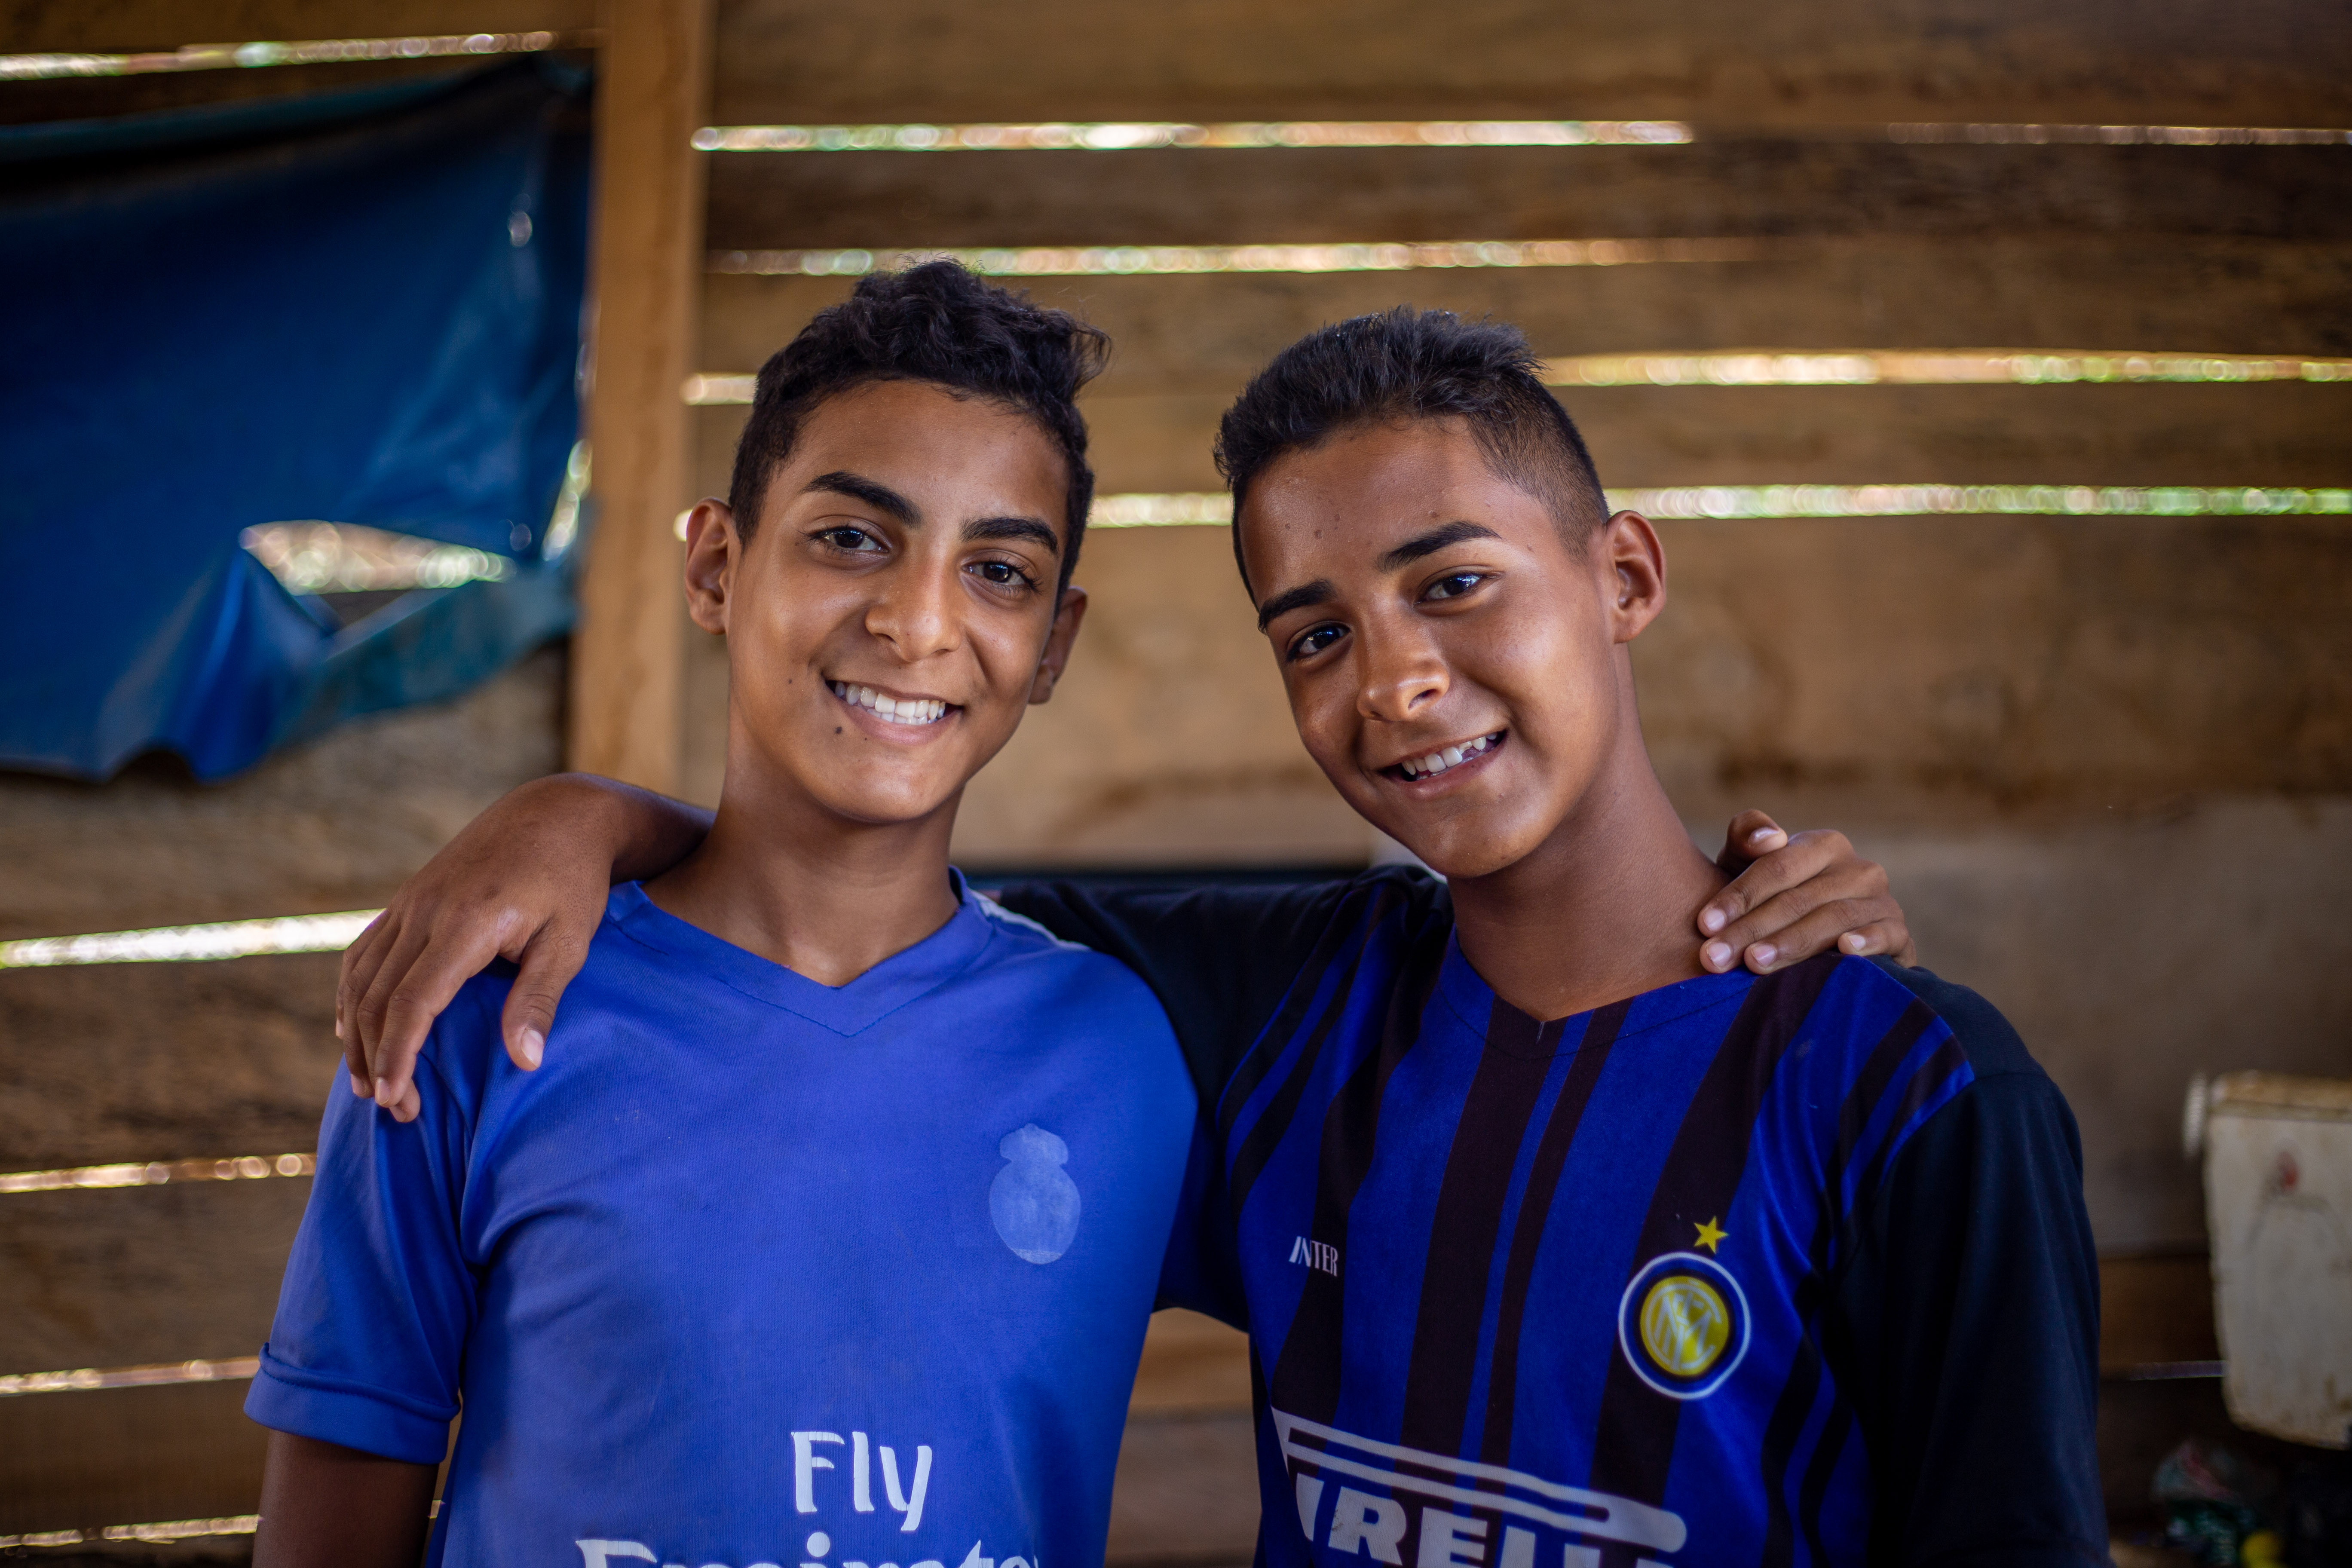 Two teen boys wearing blue and black shirts have their arms around each other, smiling at the camera.